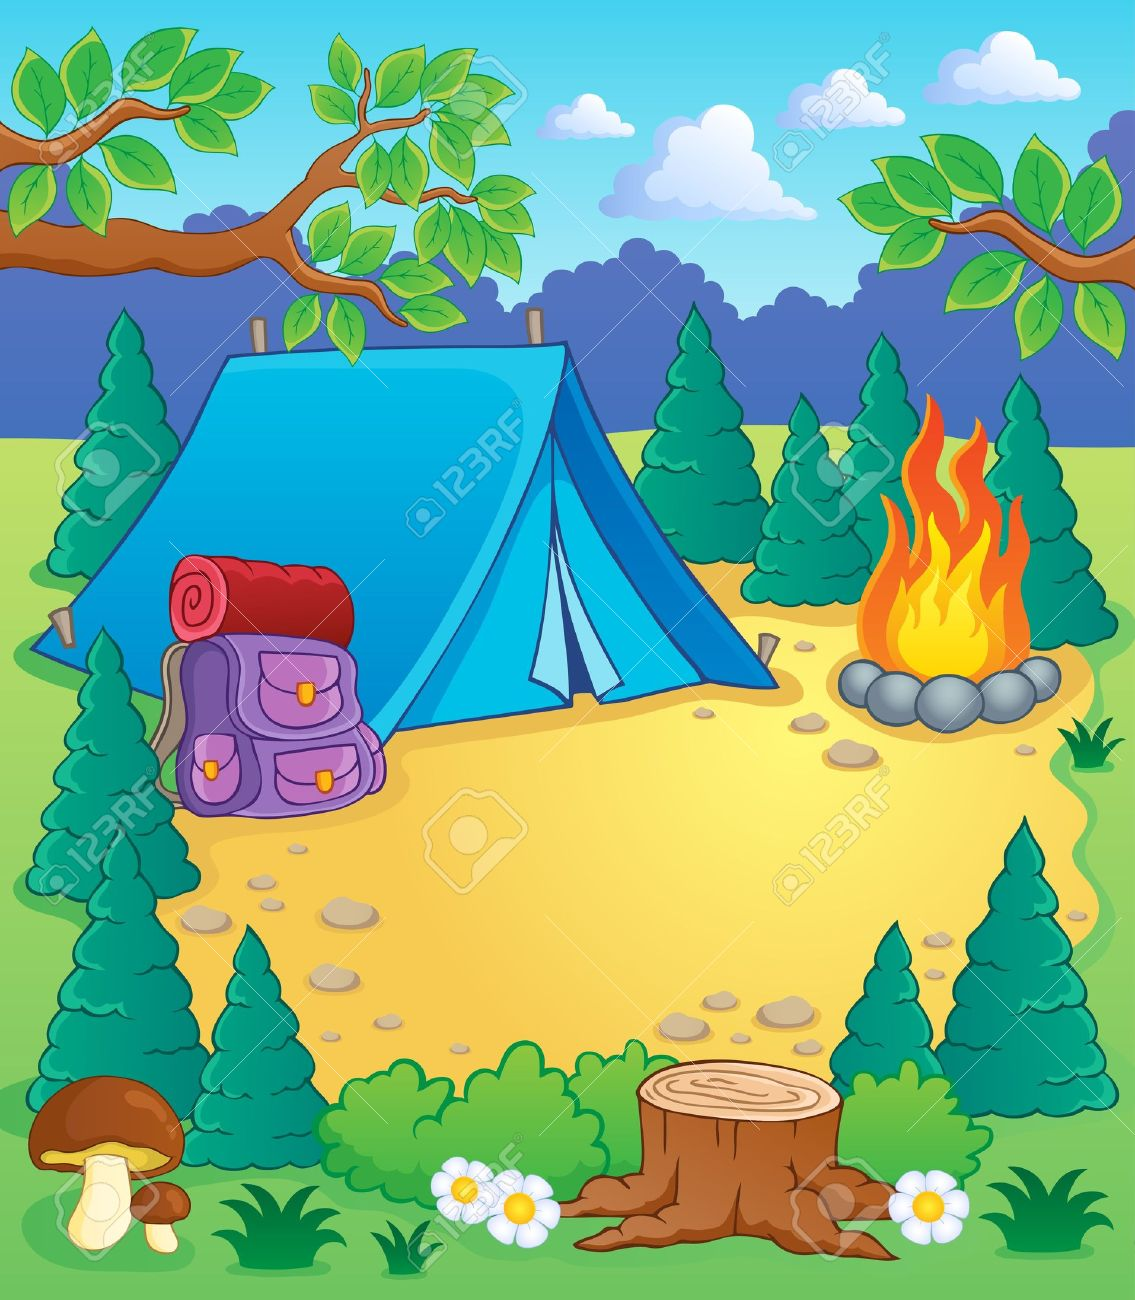 Camping Summer Camp Theme Summer Camping Camp Theme